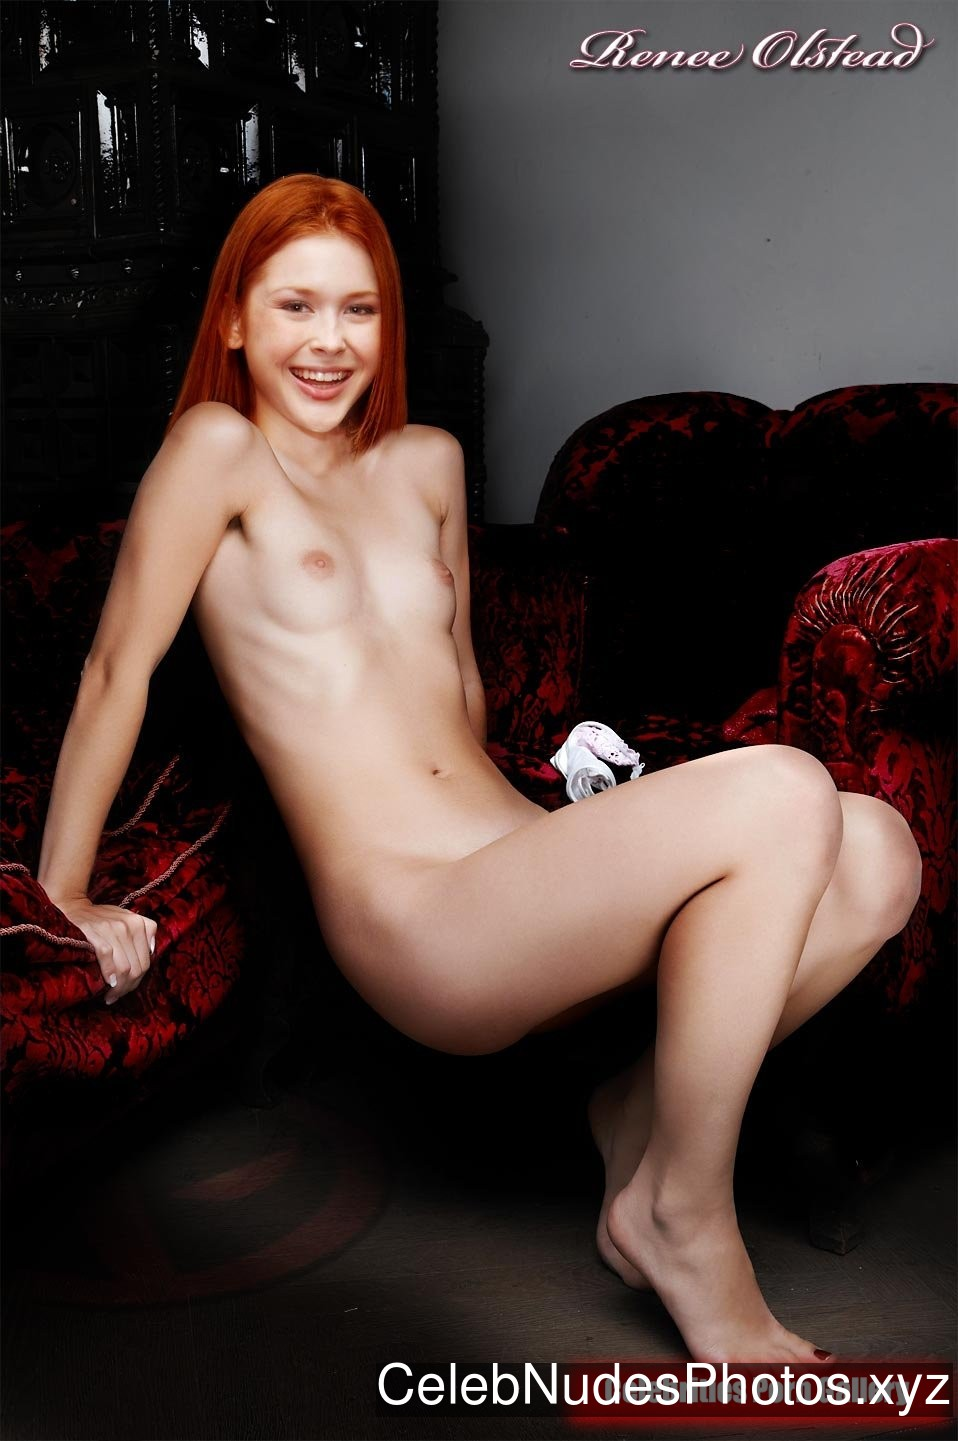 Renee Olstead Naked Celebrity Pic sexy 14